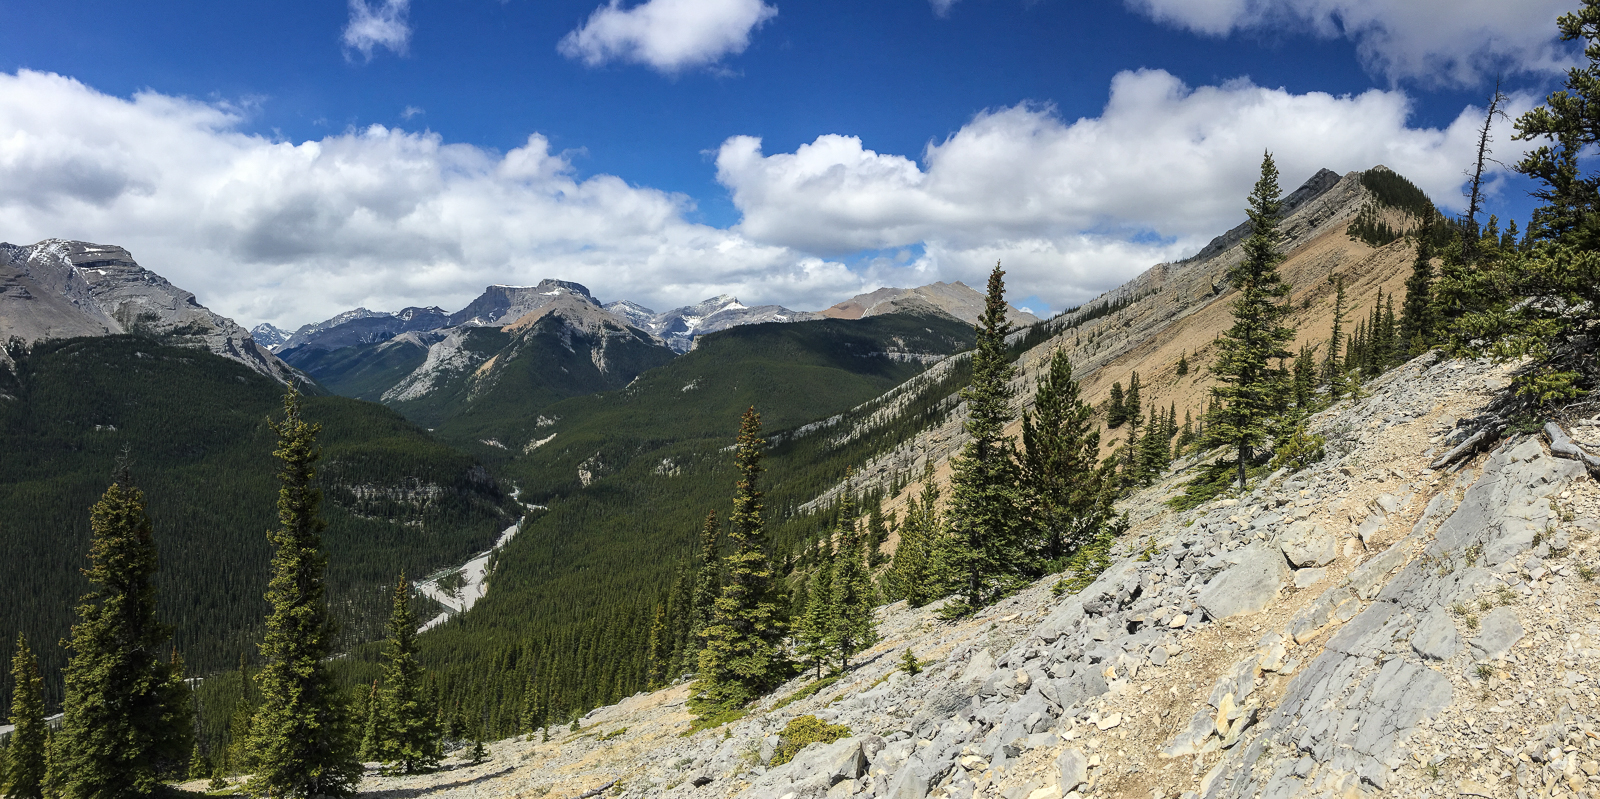 Probably my 4th or 5th time hiking this mountain. The view never gets old.